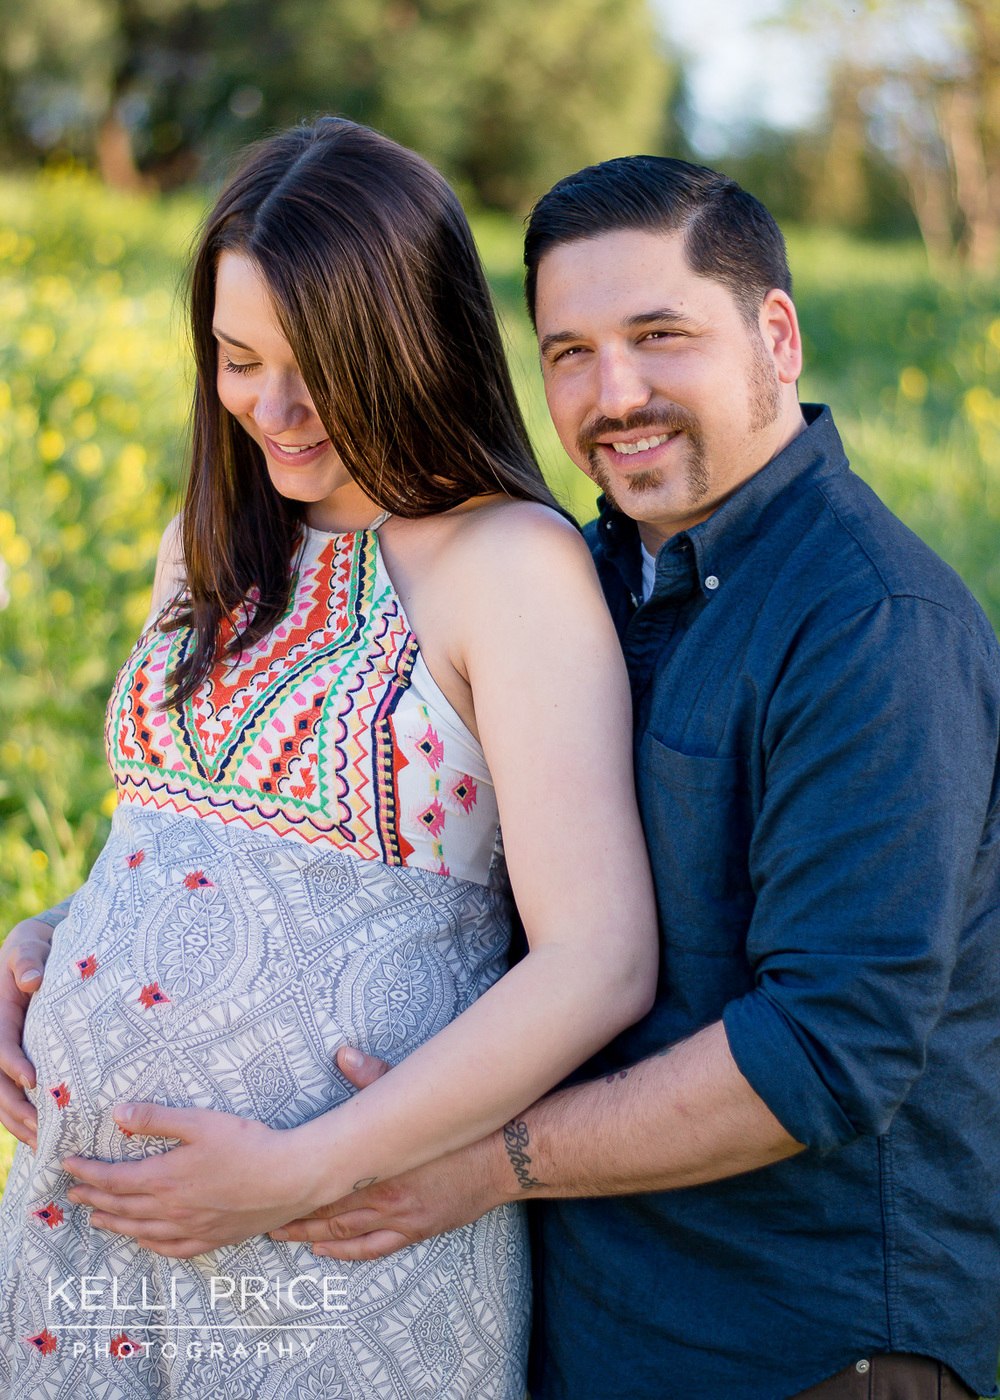 JohnstonMaternity18KelliPricePhotography_WalnutCreekCalifornia.jpg